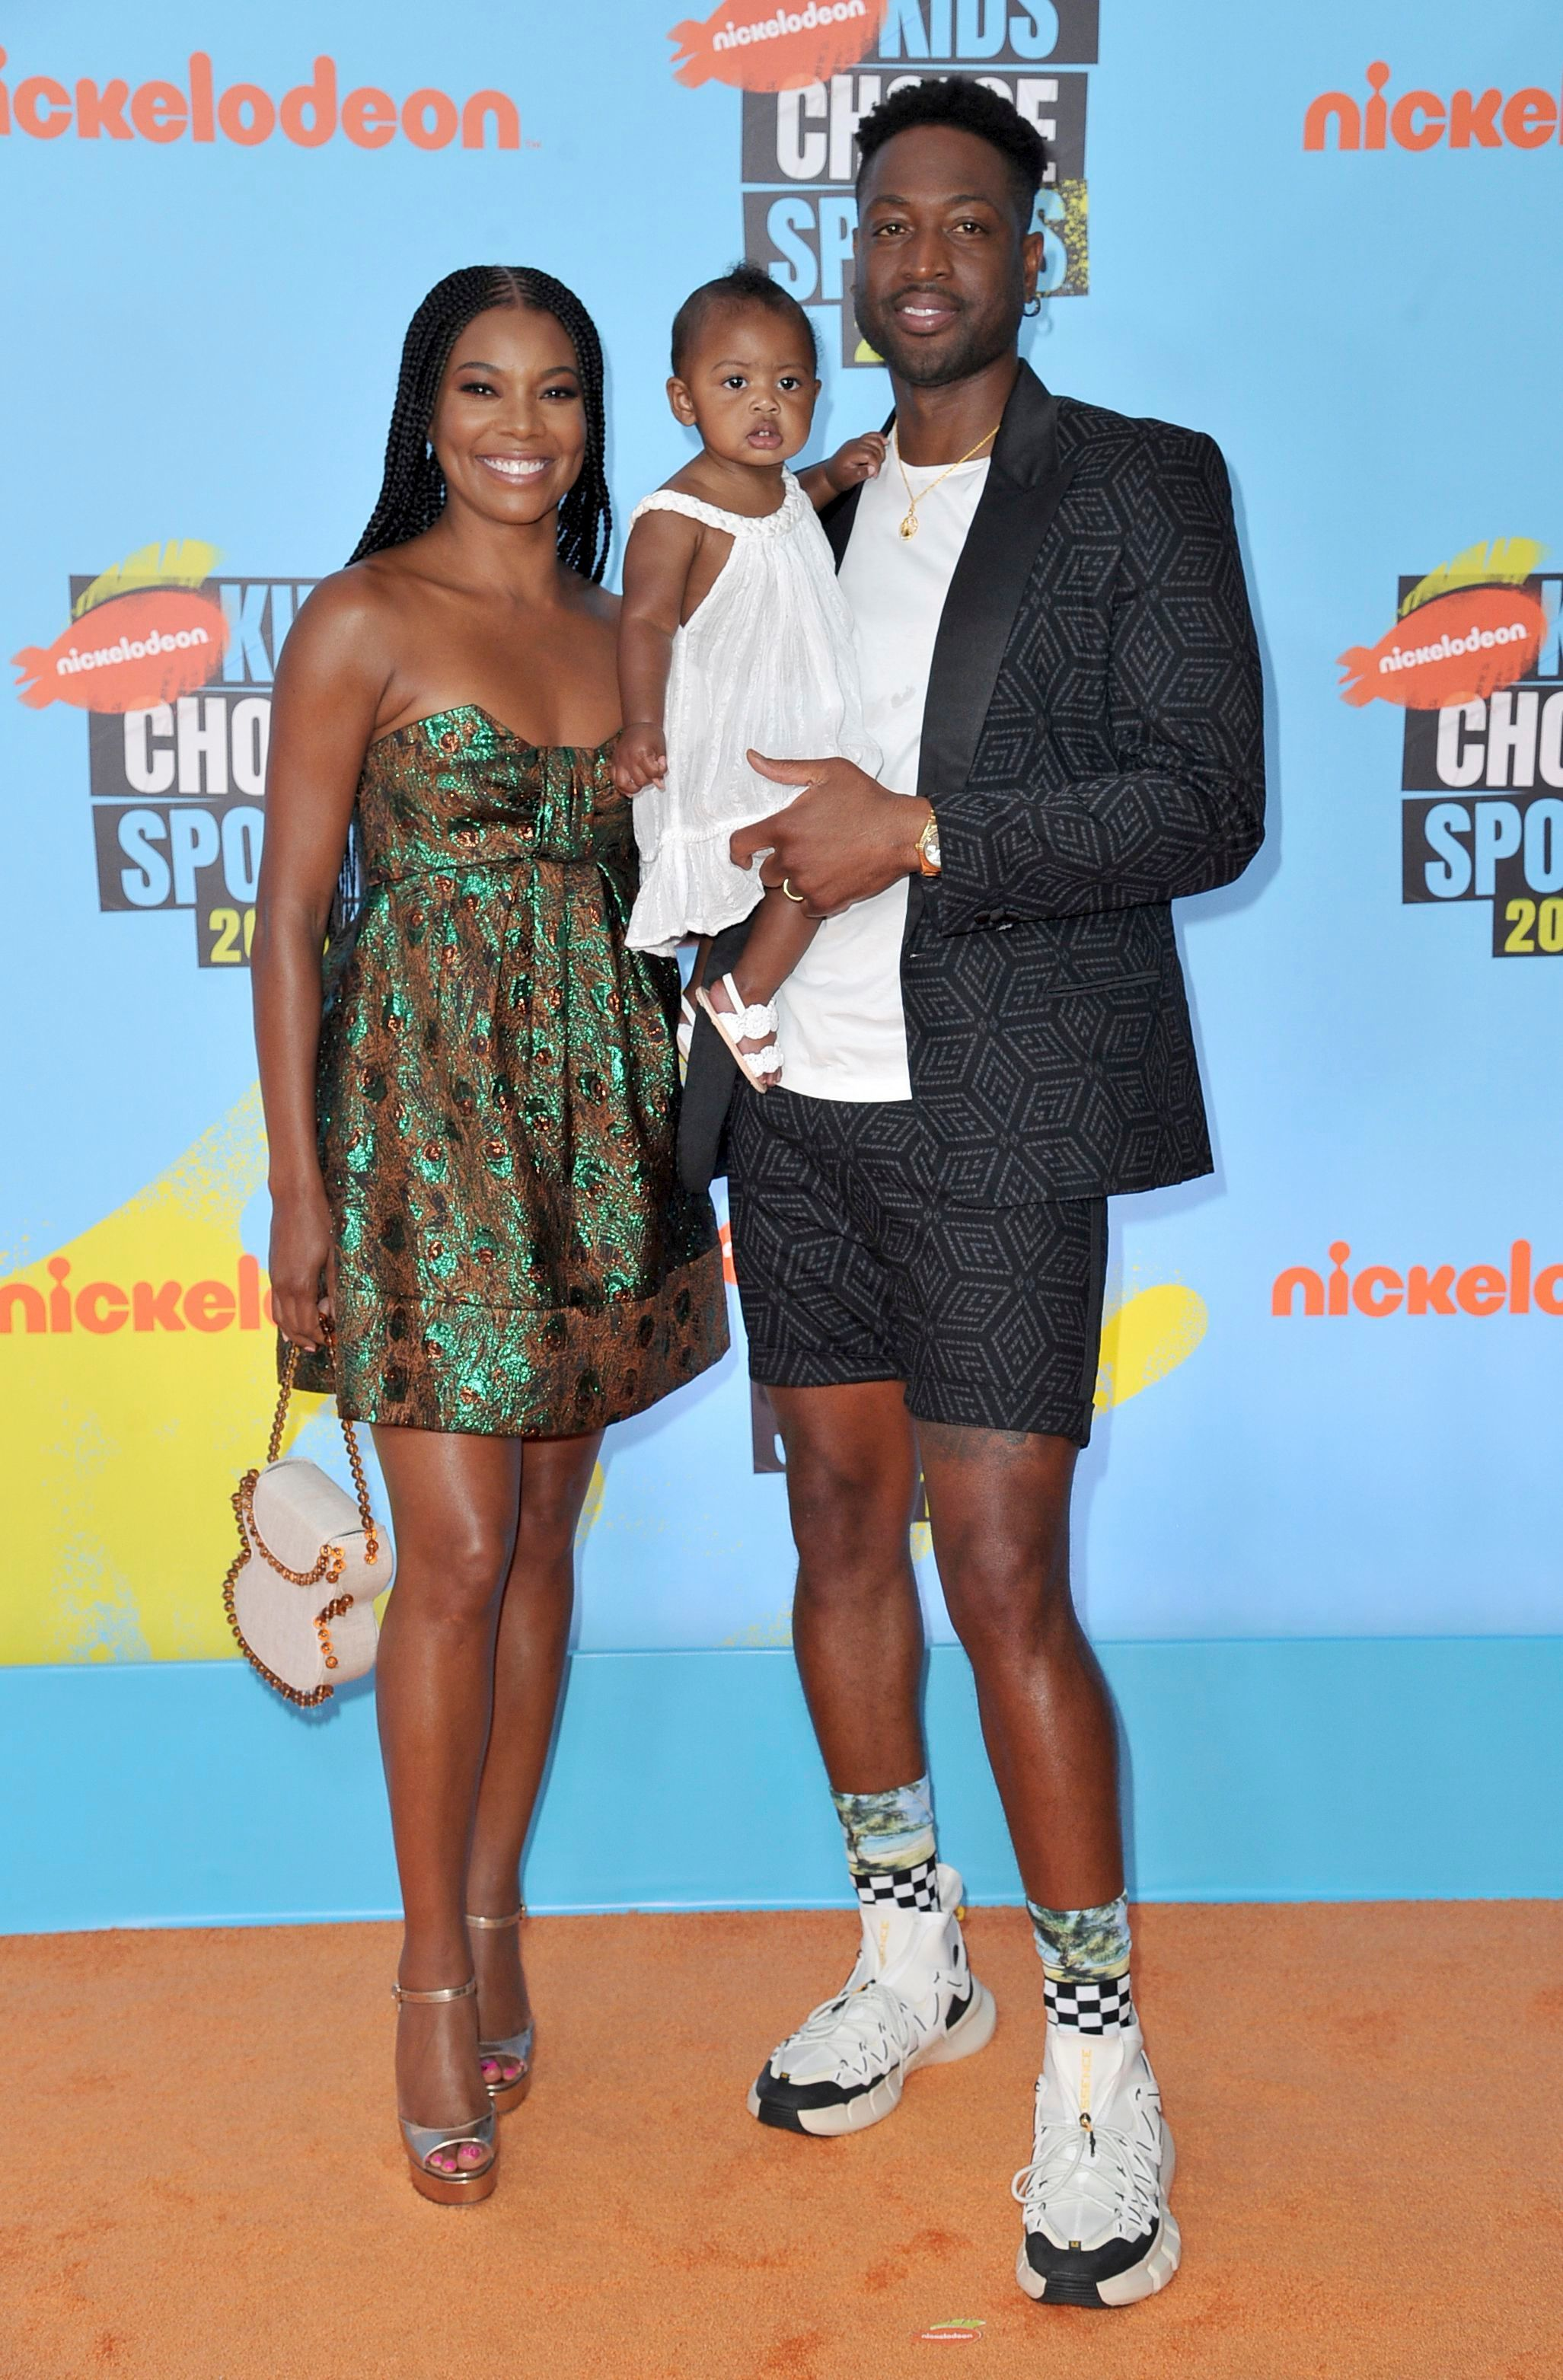 Gabrielle Union, Dwayne Wade, and their daughter Kaavia James Union Wade arrive at the Kids' Choice Sports Awards in Los Angeles on July 11, 2019.